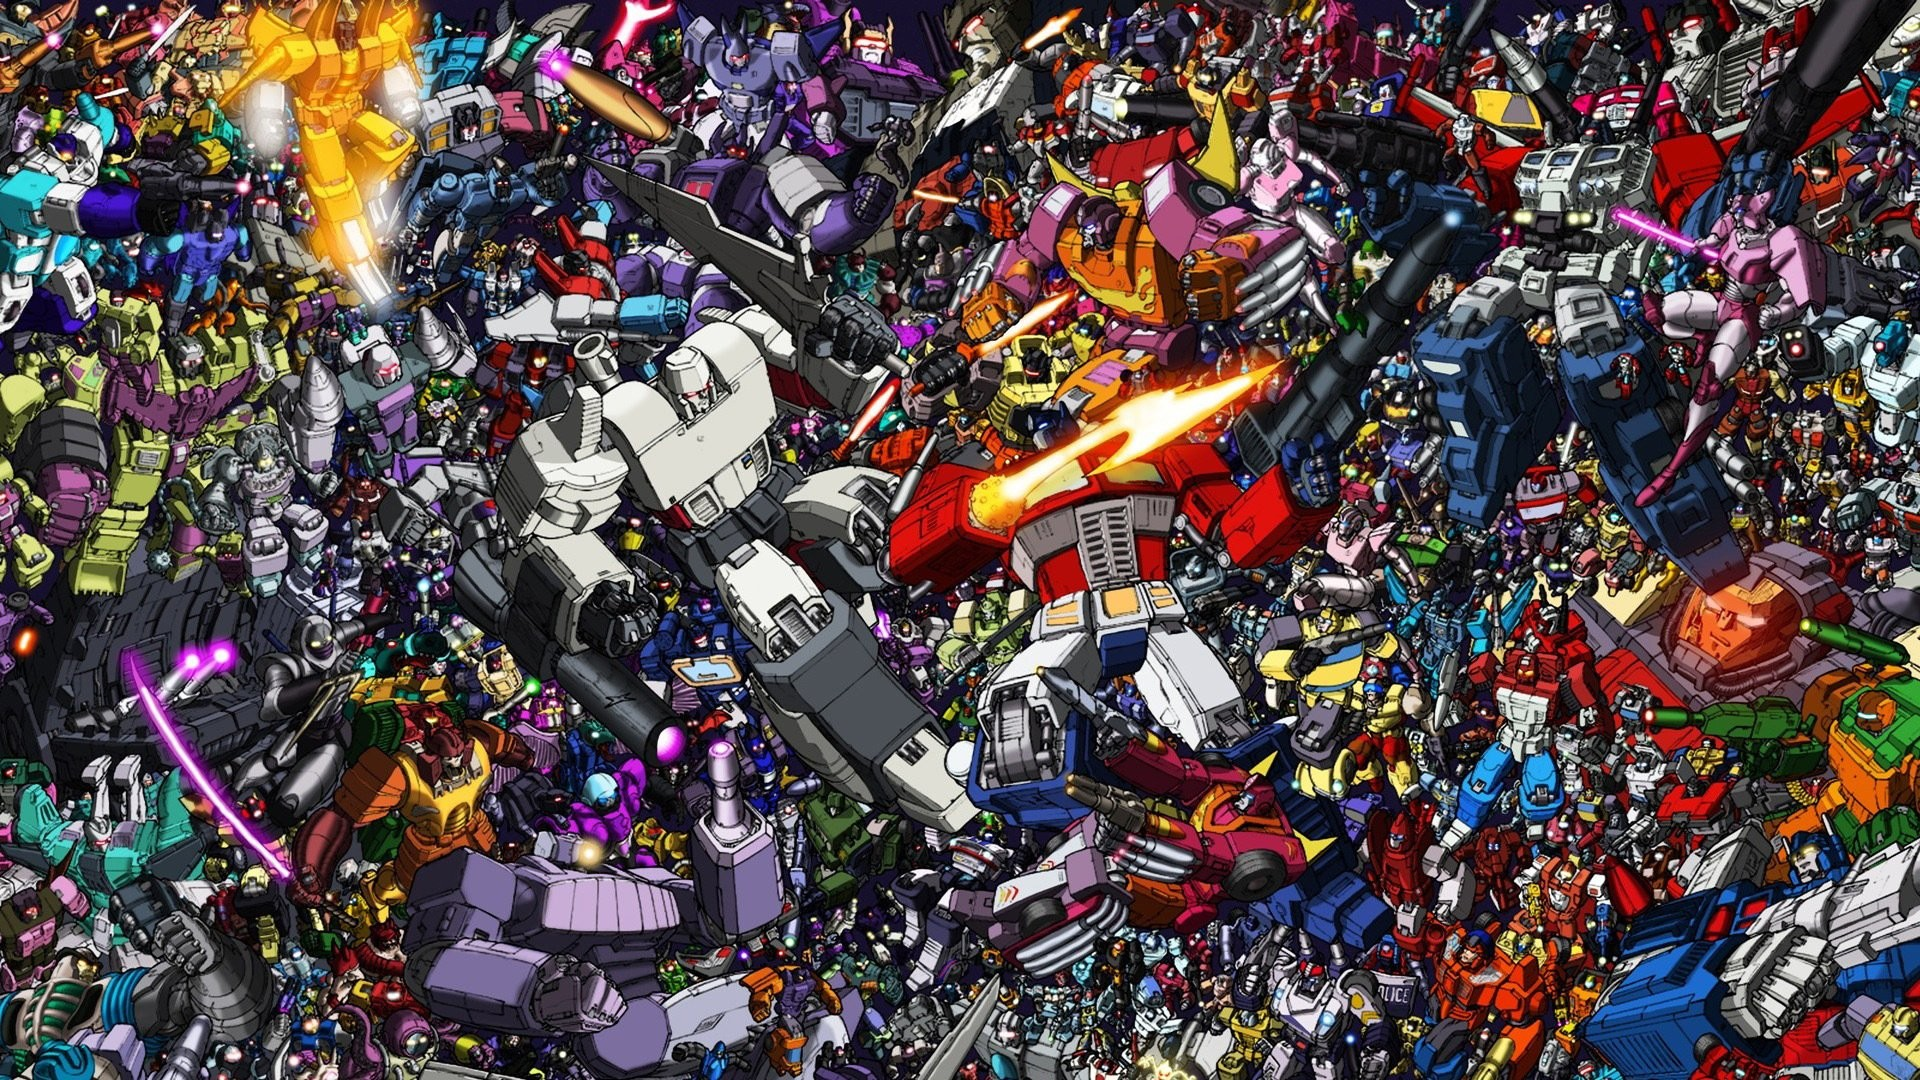 1920x1080 G1 Transformers Wallpapers (3 Wallpapers)